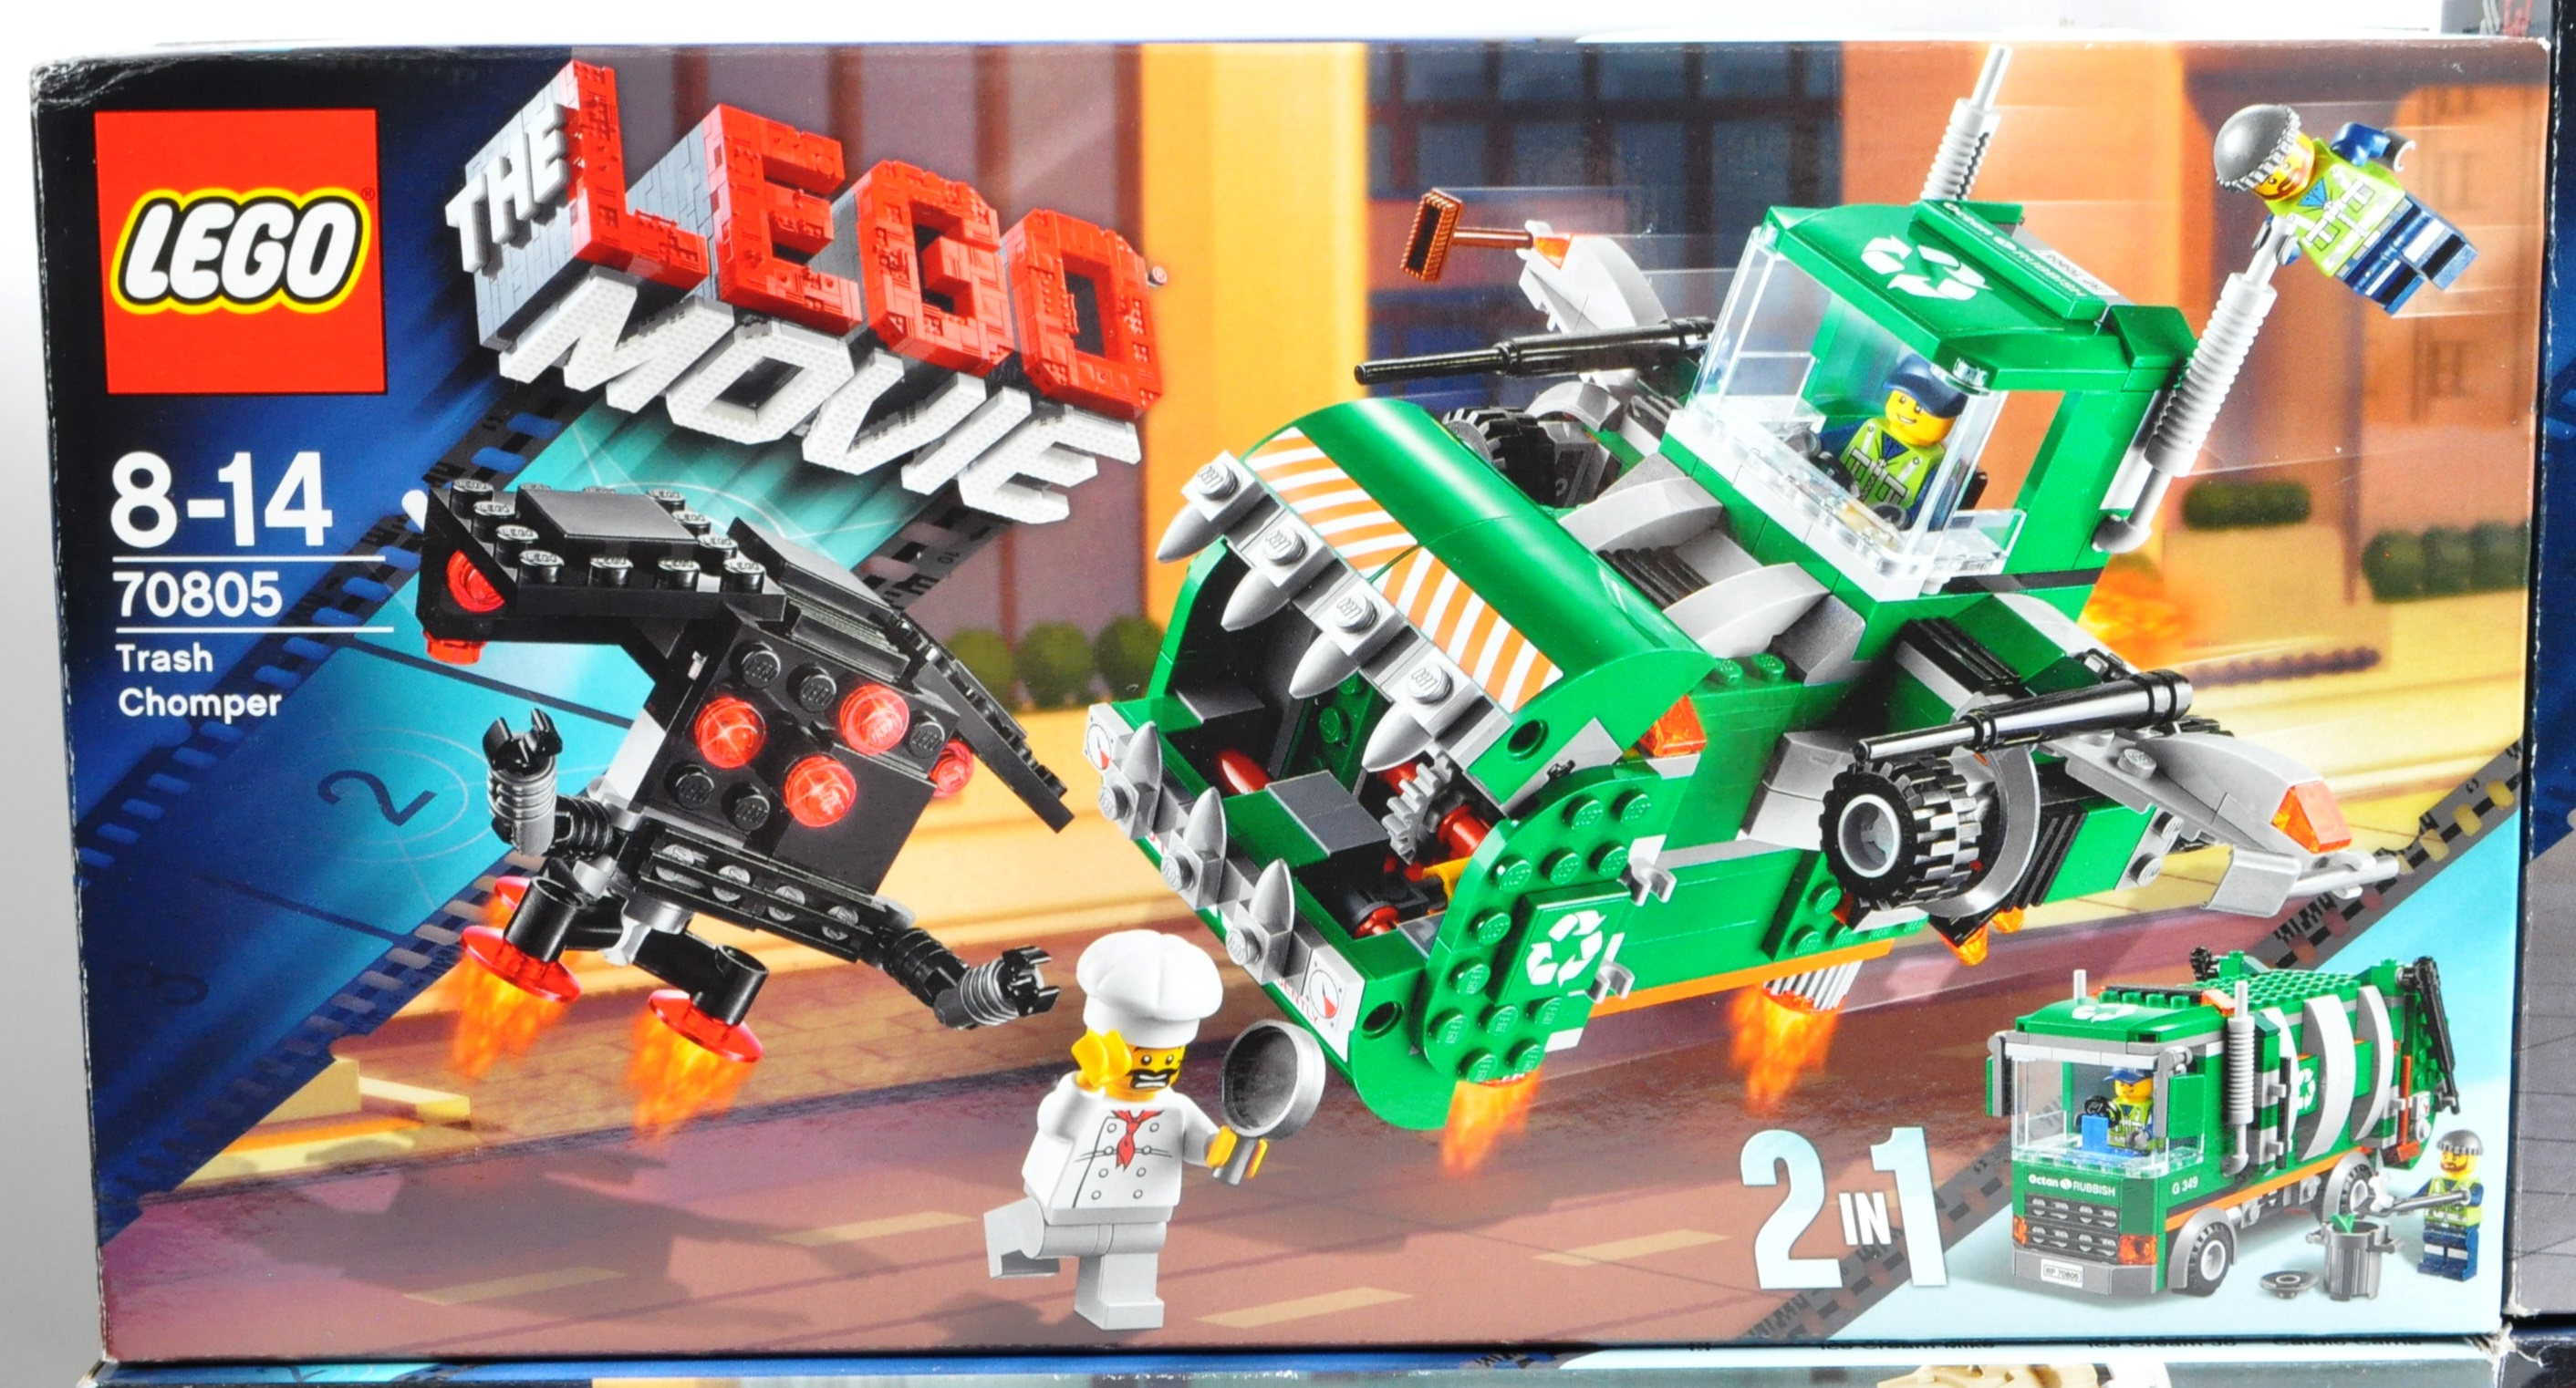 LEGO SETS - THE LEGO MOVIE - COLLECTION OF X7 LEGO MOVIE SETS - Image 3 of 17